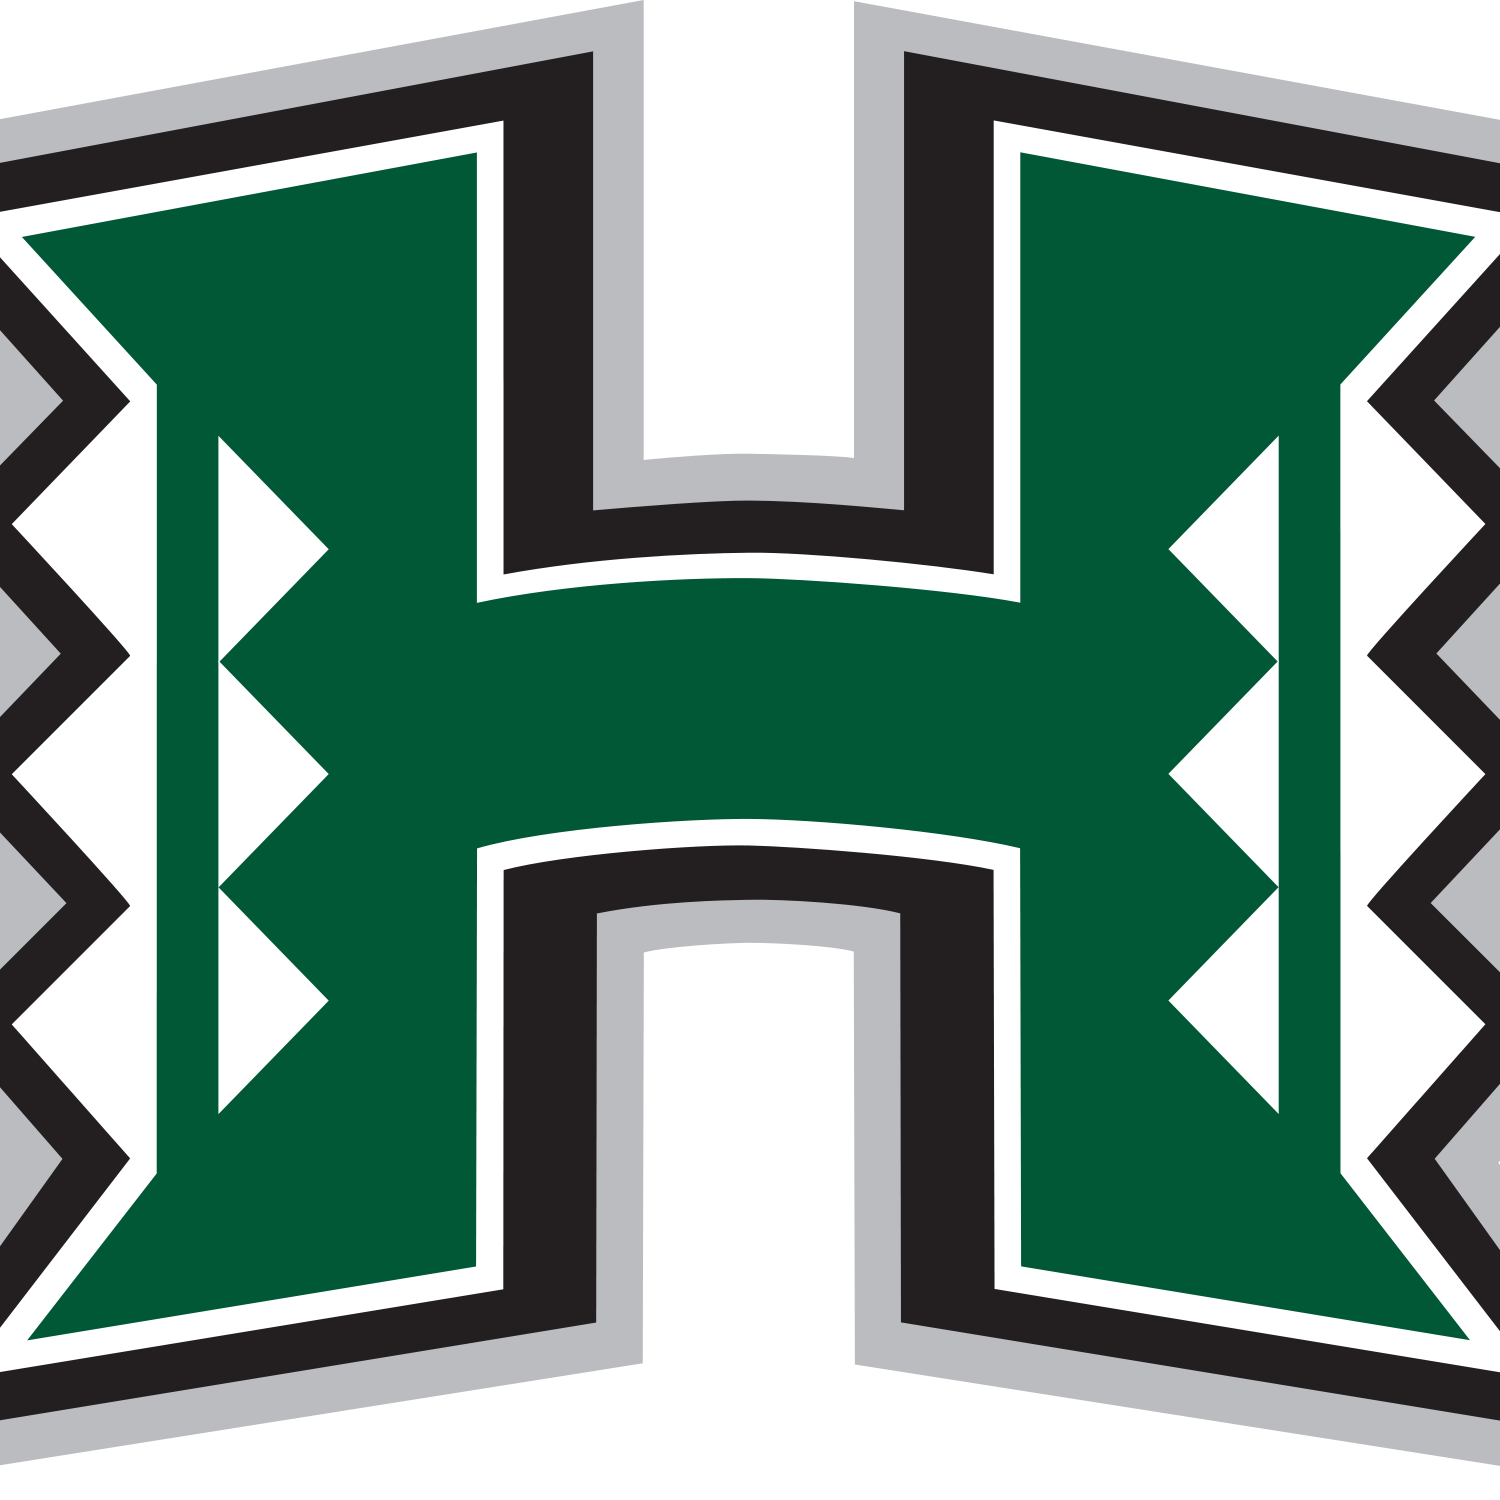 Baseball stadium advertising clipart. Hawaii hawaiibaseball twitter